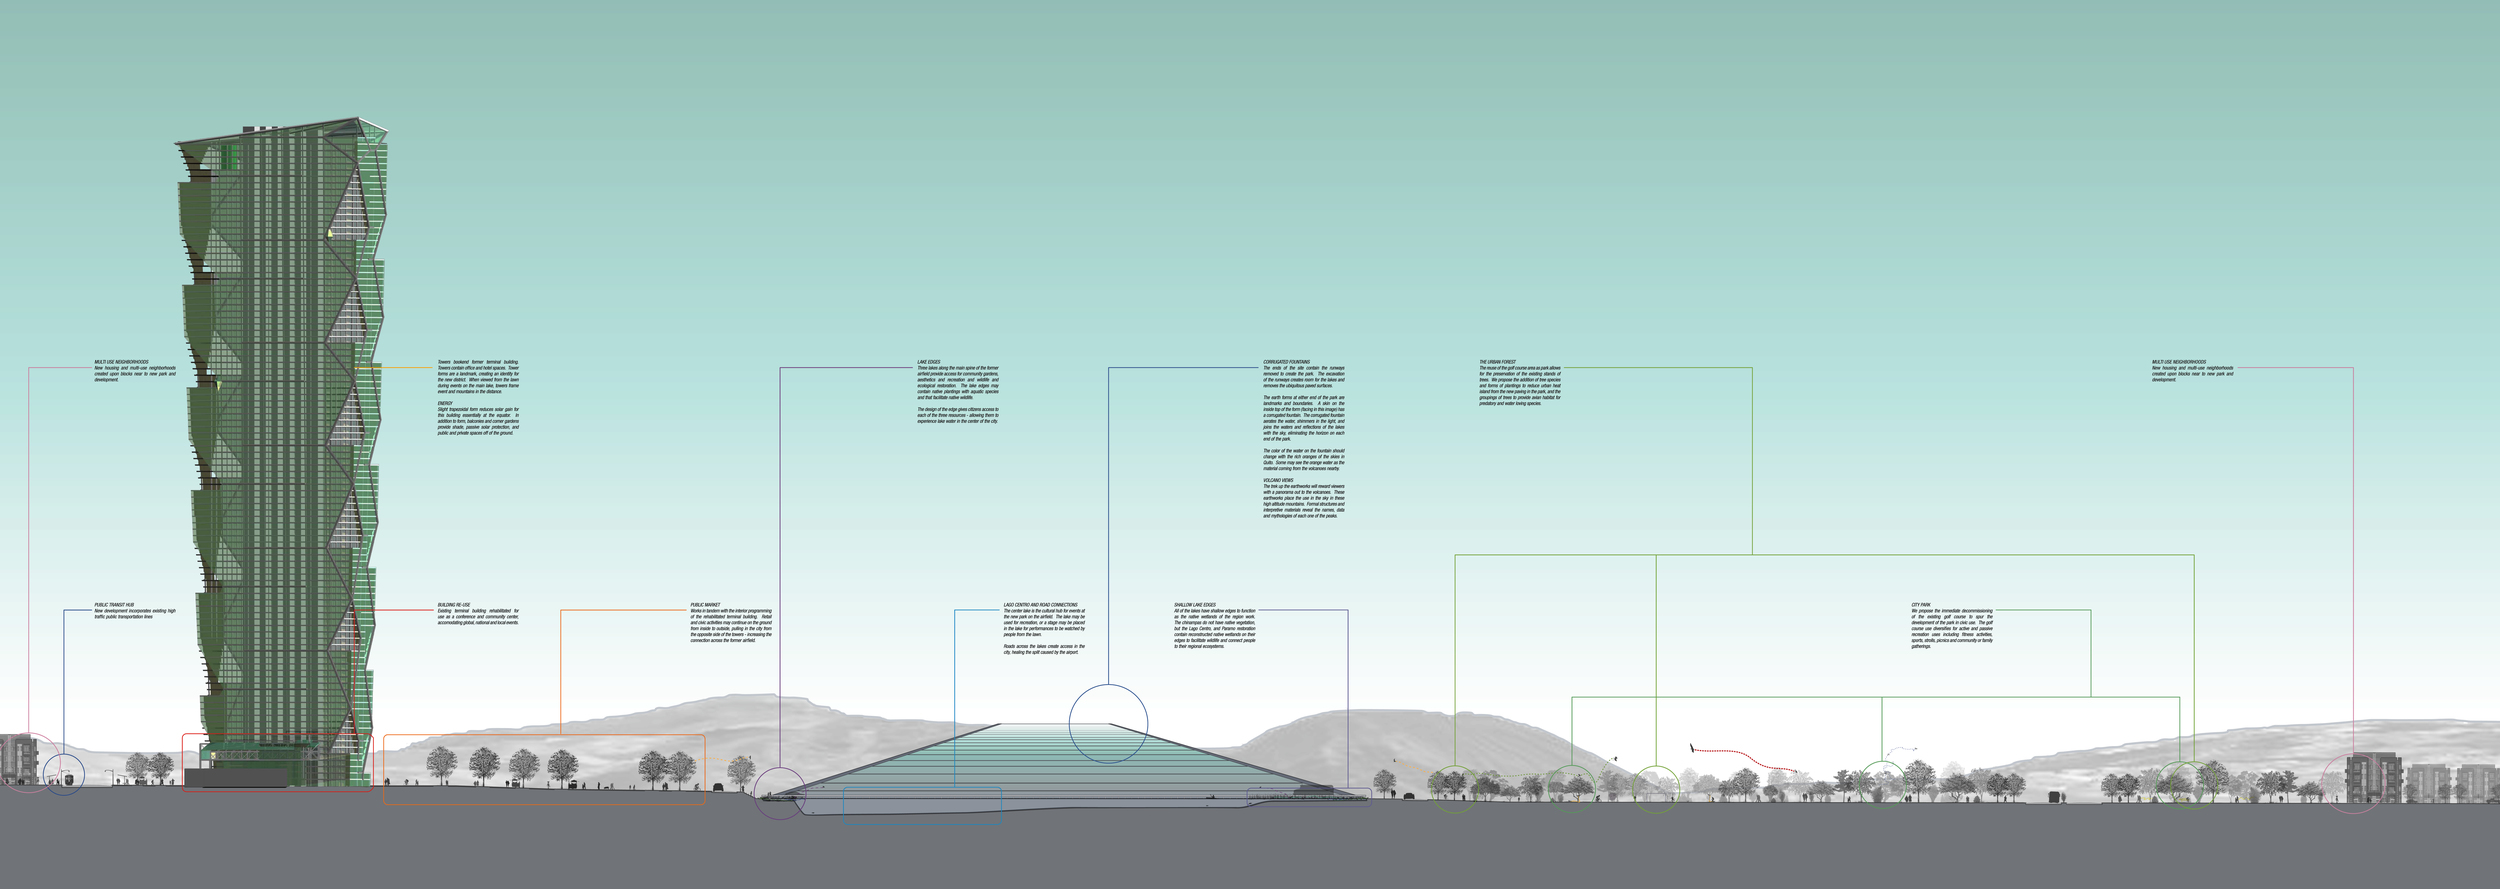 A section through the park. The tower structure optimizes views, capacity for sky gardens and structural stability in a potential earthquake.